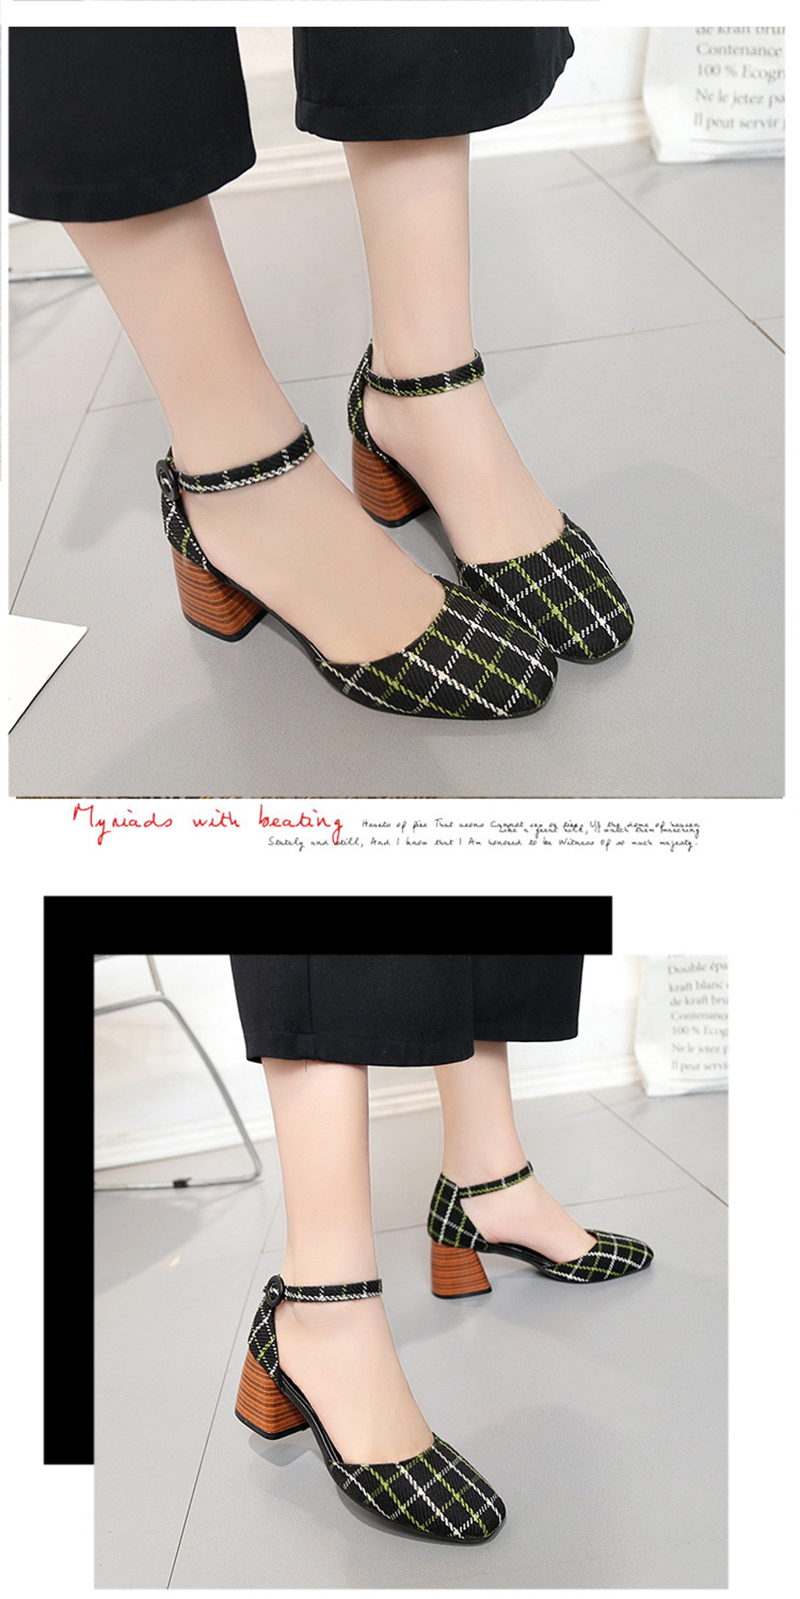 High Heels Shoes Women Pumps Square Toe Summer Sandals Thick Heels Plaid Casual Good Quality Female Office Shoes Comfortable 10 Online shopping Bangladesh